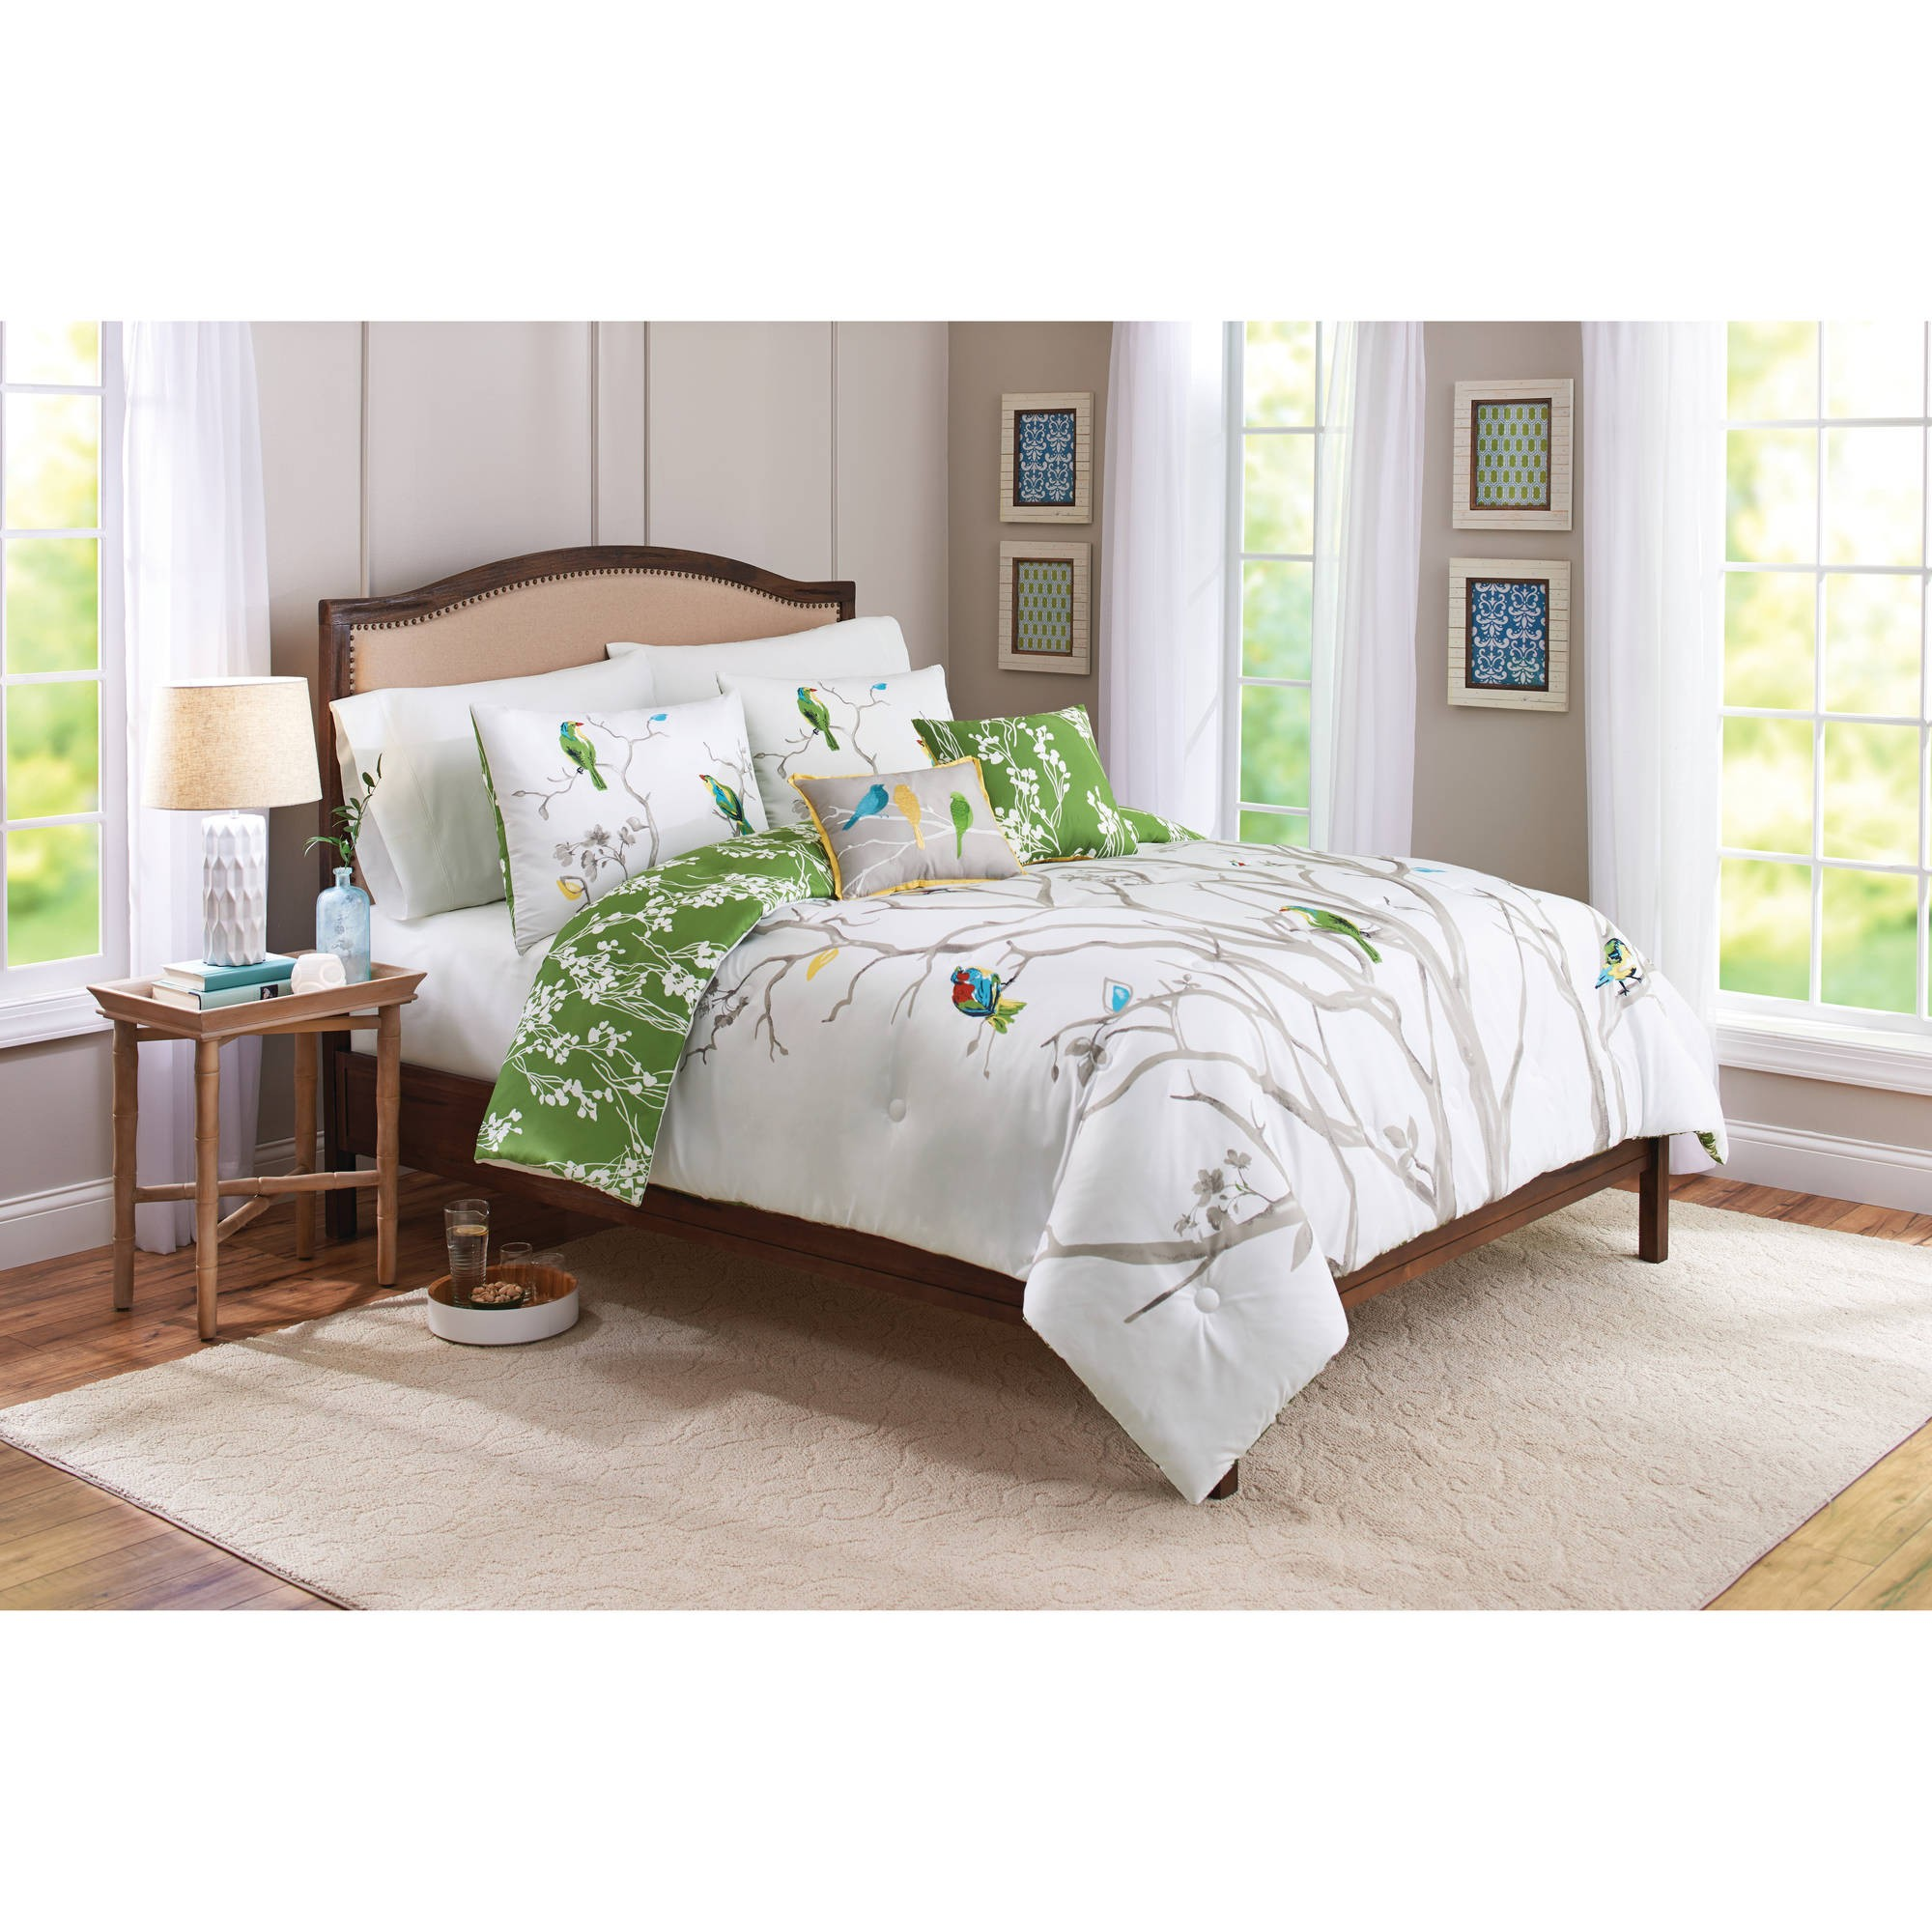 Better Homes And Gardens Comforter Sets Walmart